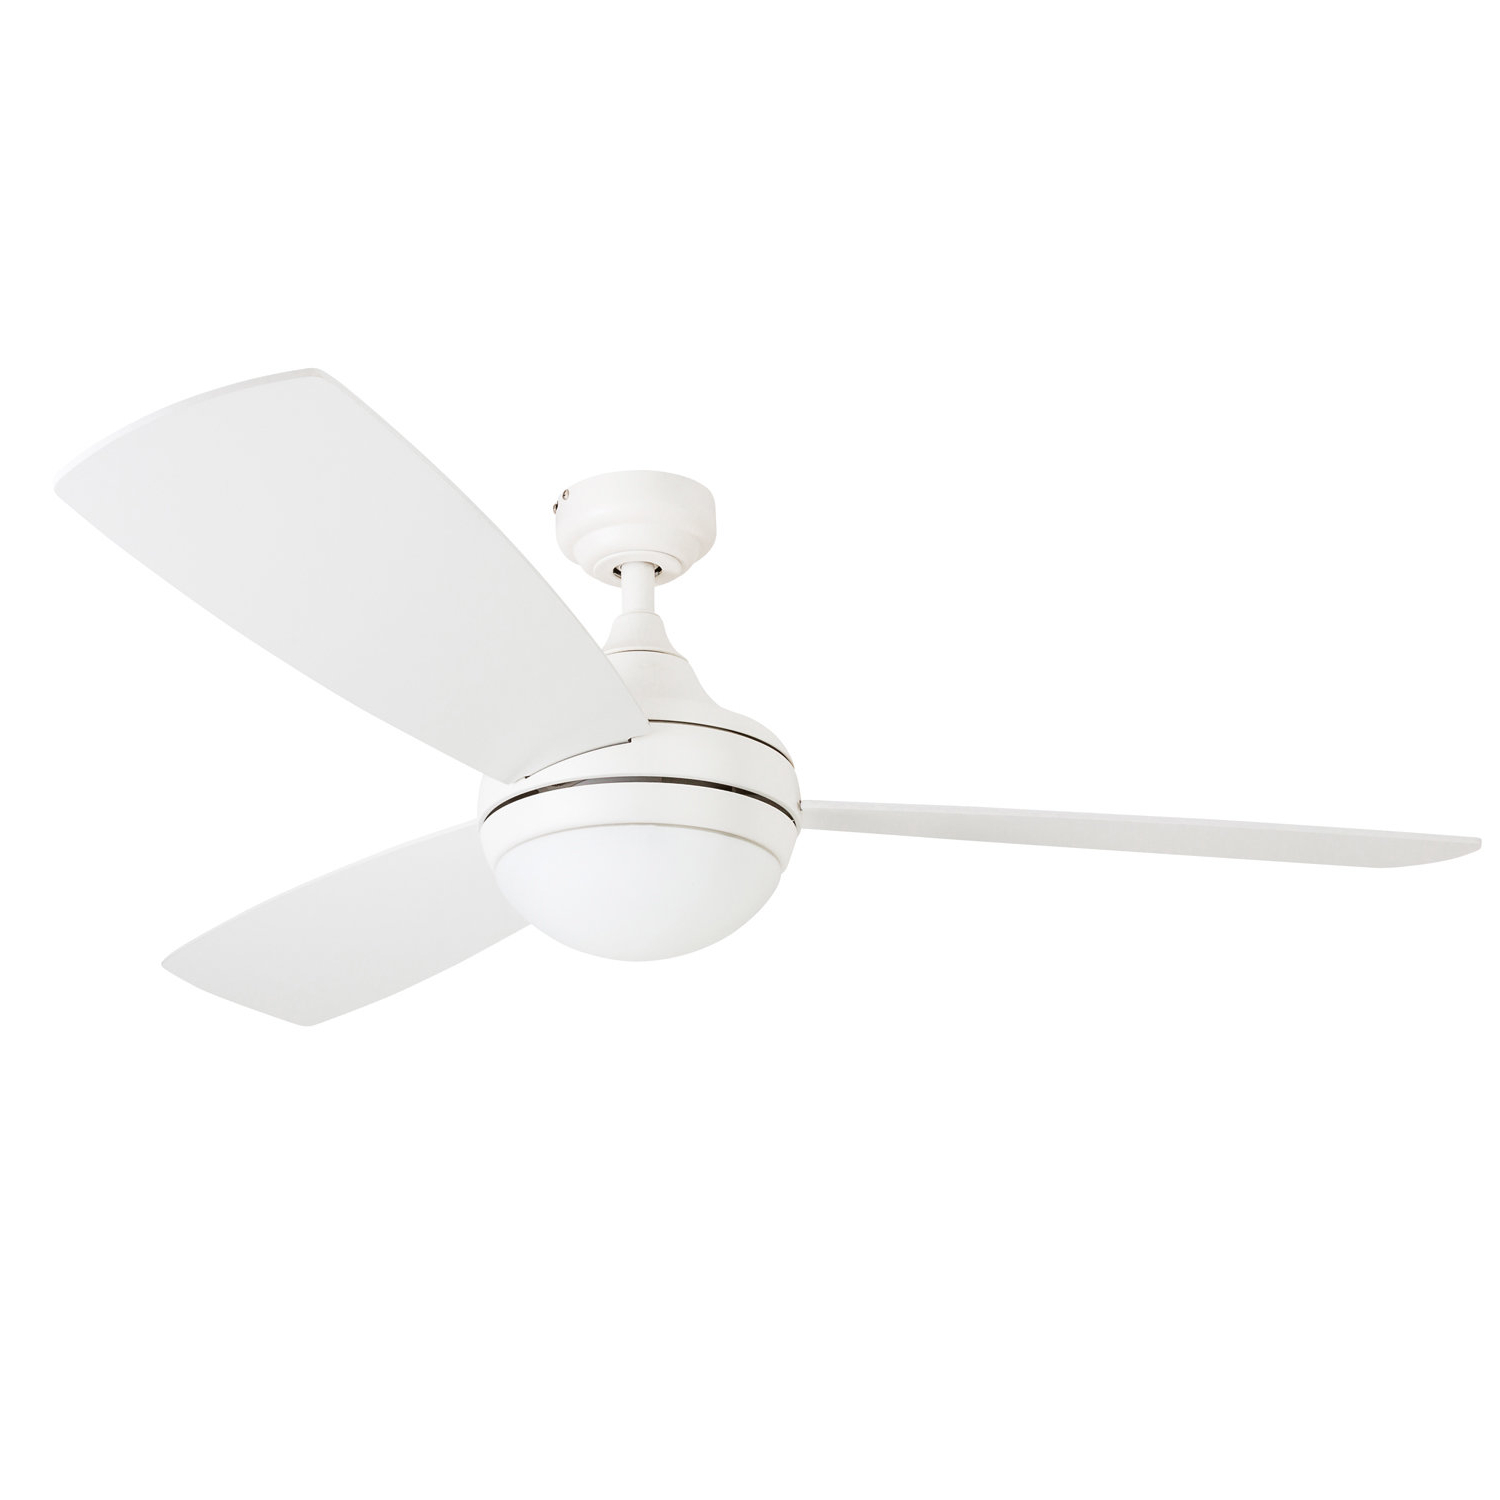 "Wrought Studio 52"" Alyce 3 Blade Led Ceiling Fan With Remote Control For Current Alyce 3 Blade Led Ceiling Fans With Remote Control (View 4 of 20)"